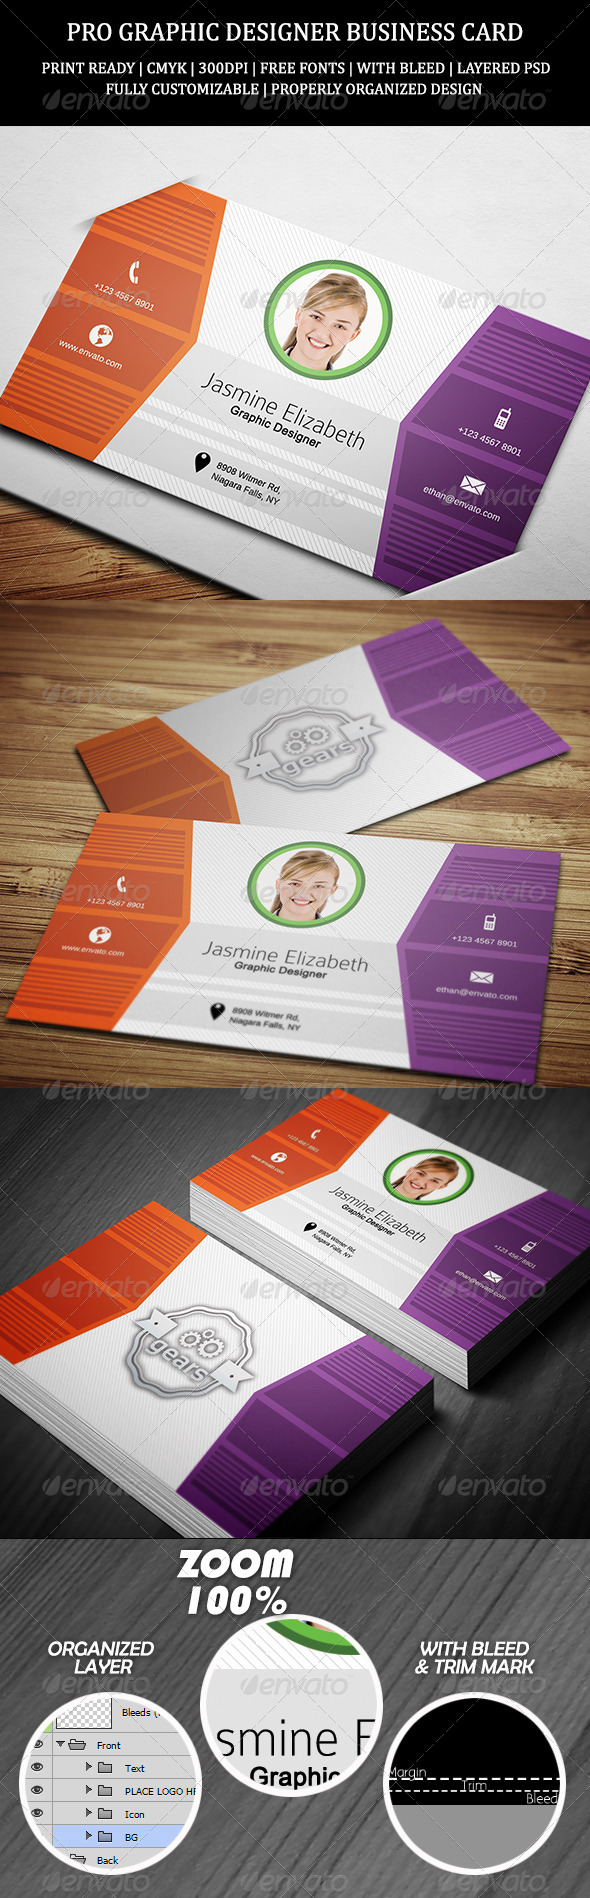 GraphicRiver Pro Graphic Designer Business Card 7260418